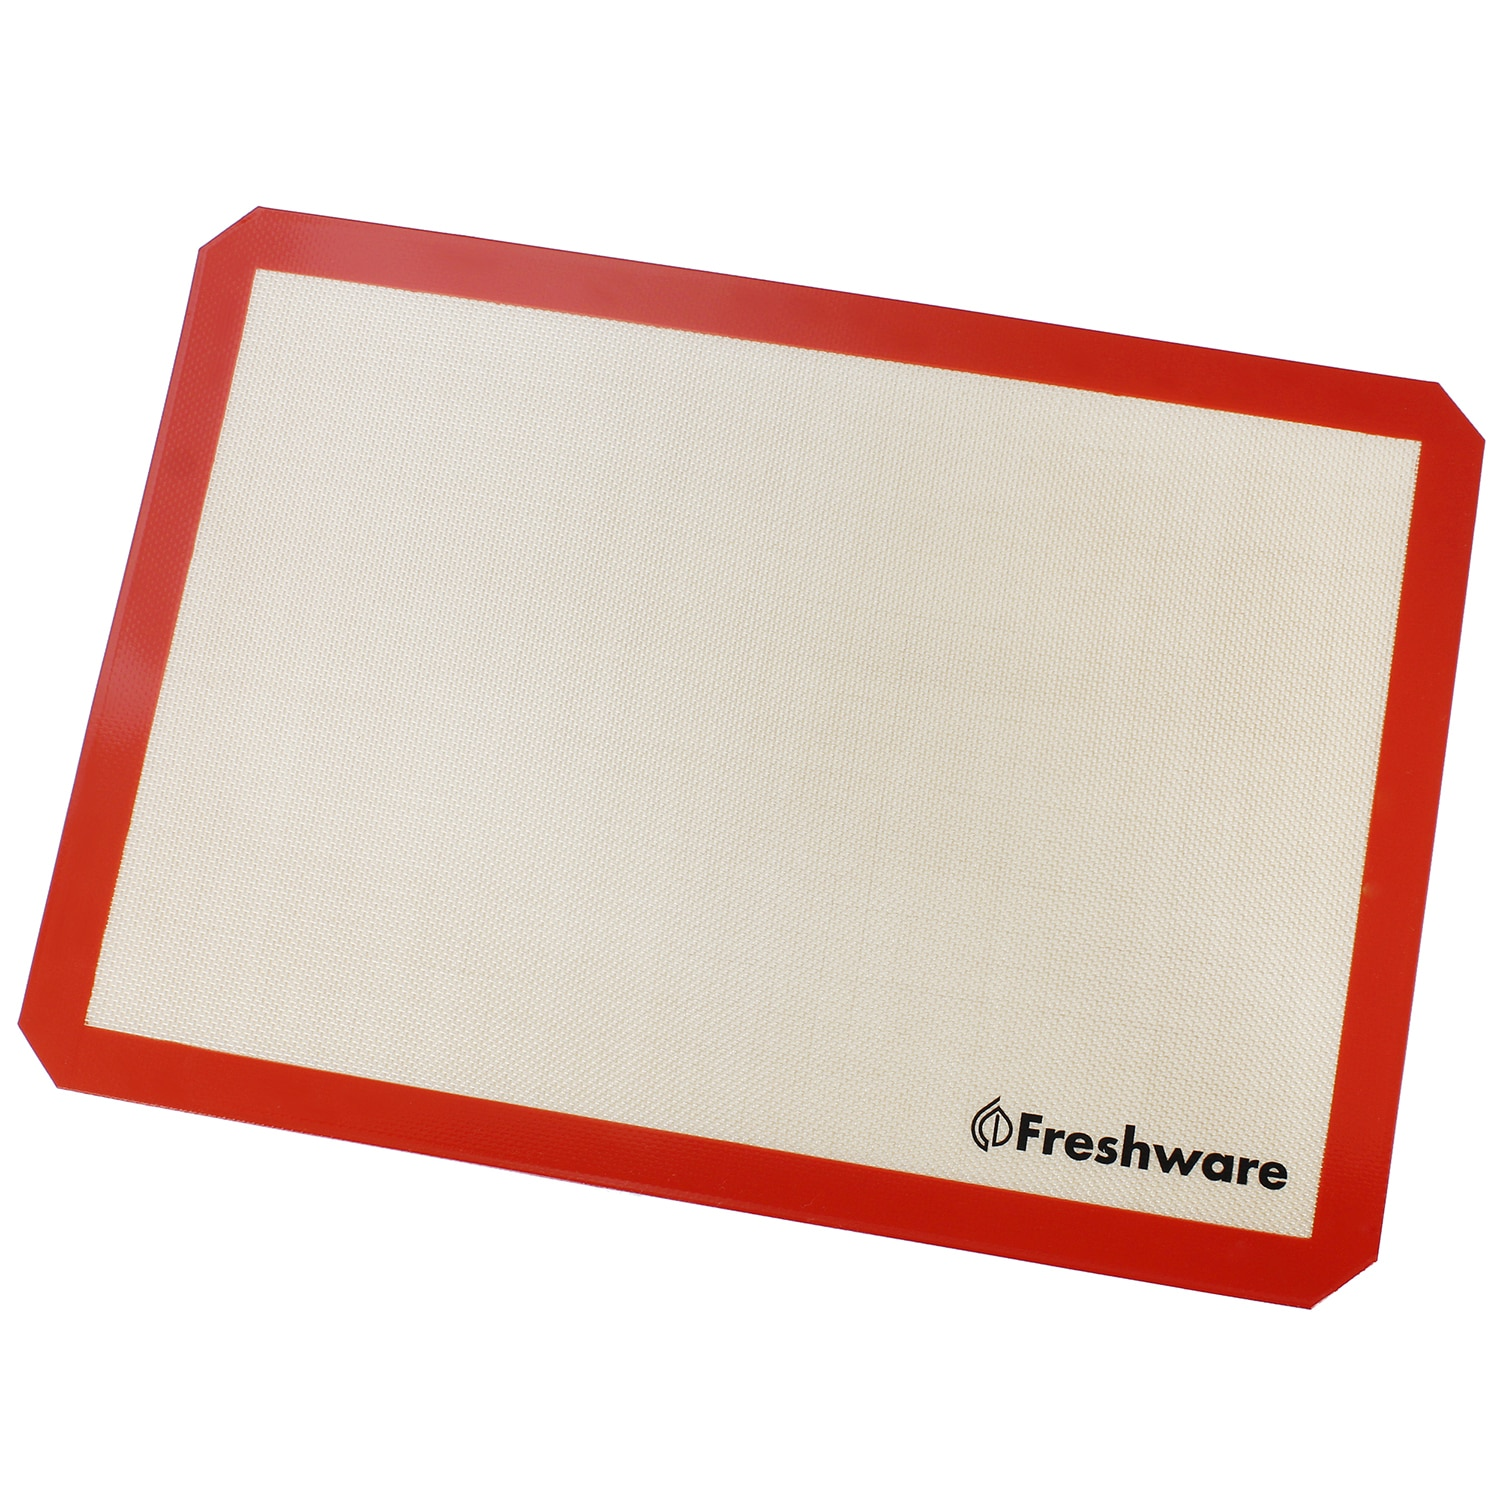 Freshware Silicone Big Non-Stick Baking Mat (Red, Brown),...